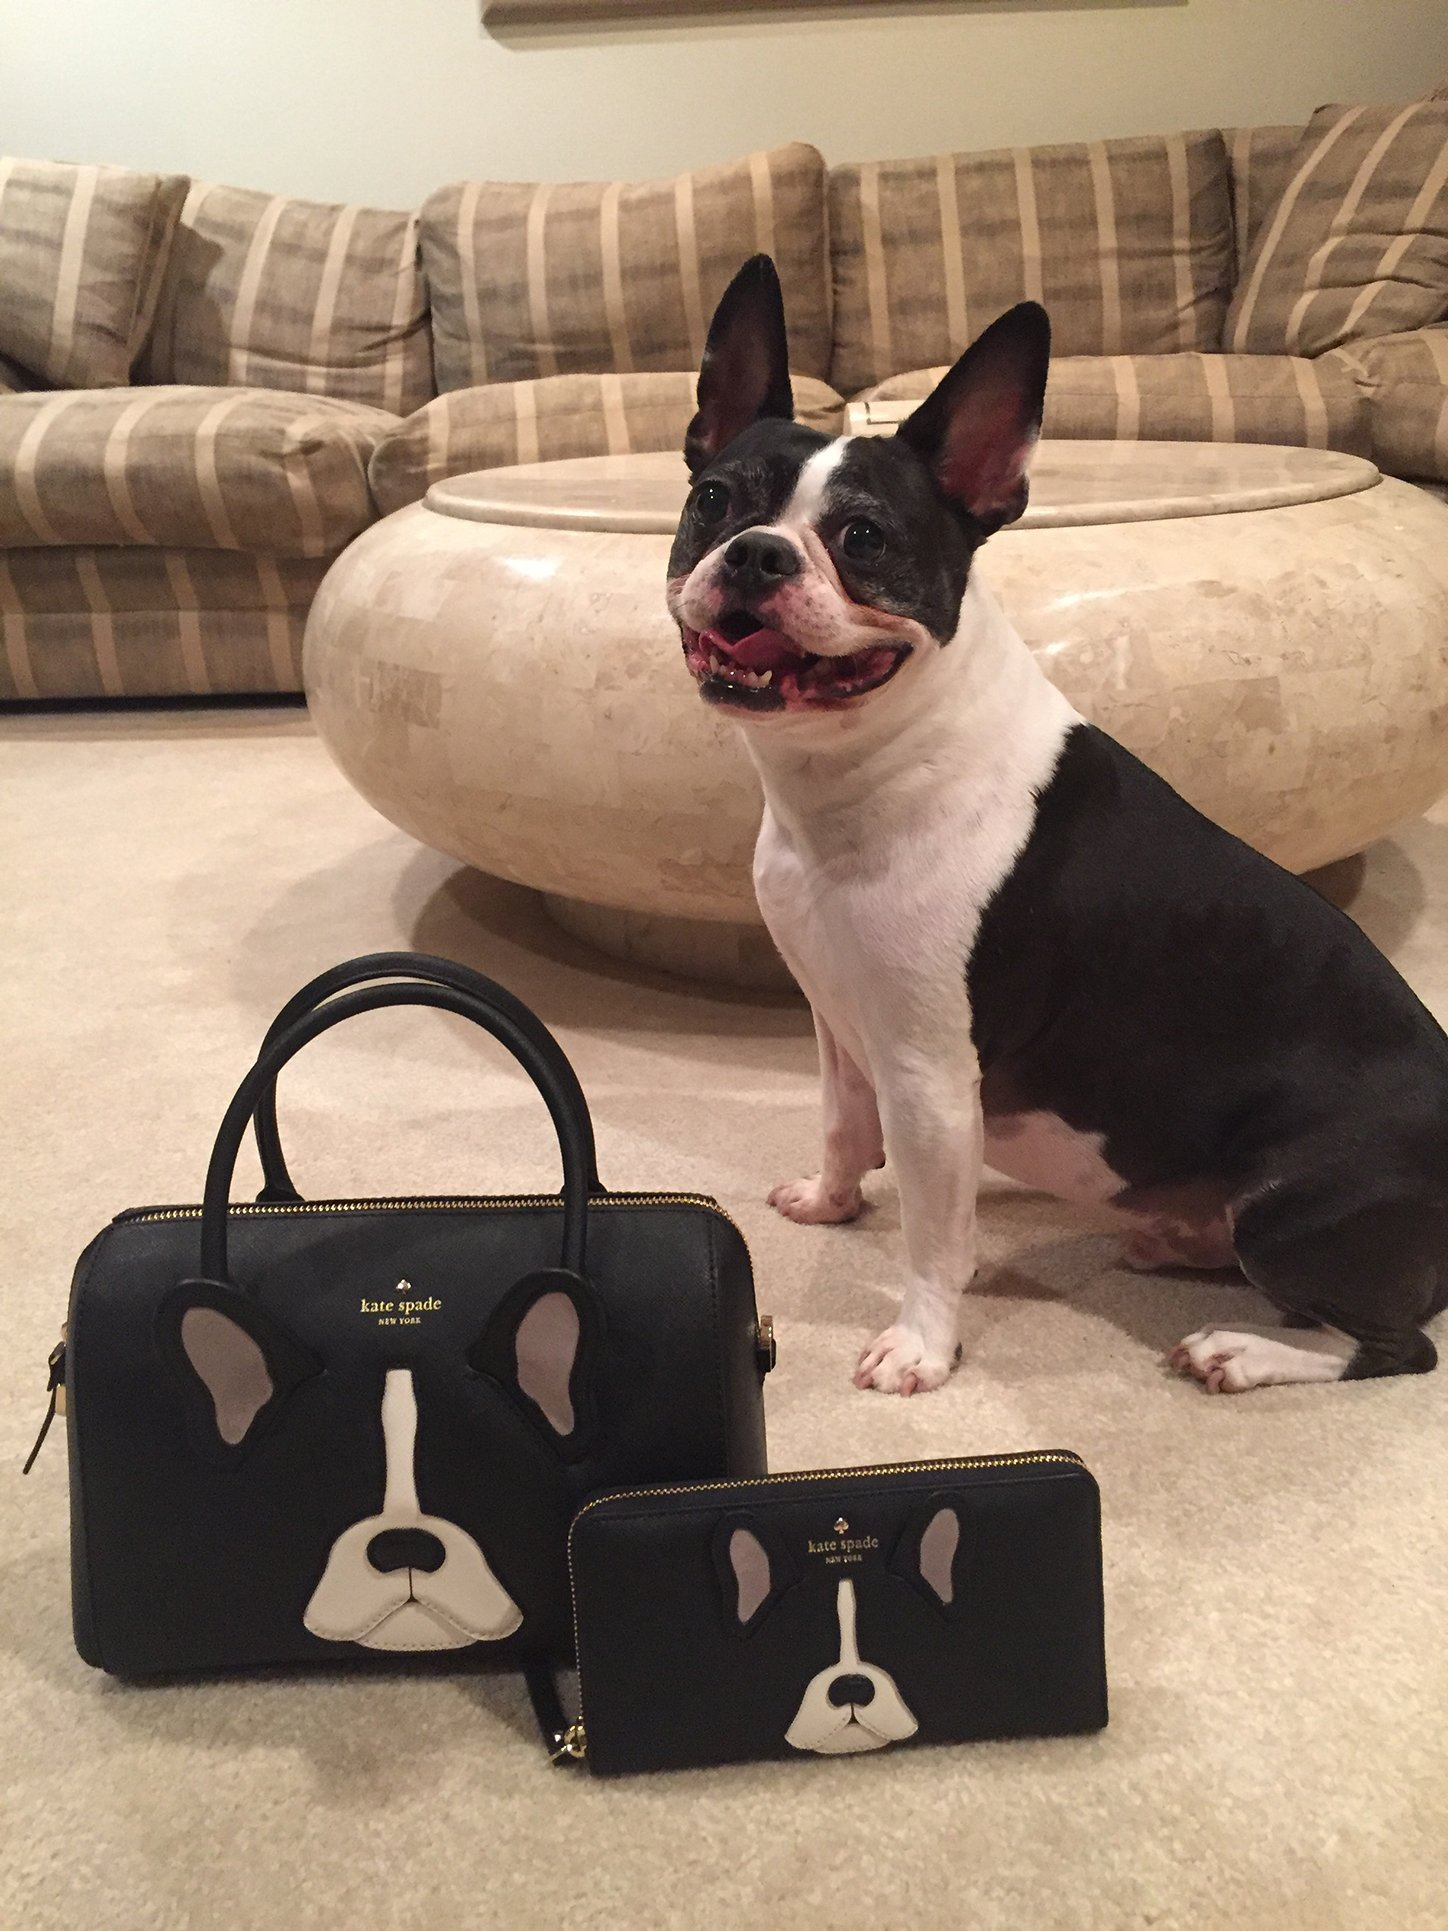 Tucker the Frenchton pup next to Kate Spade handbags